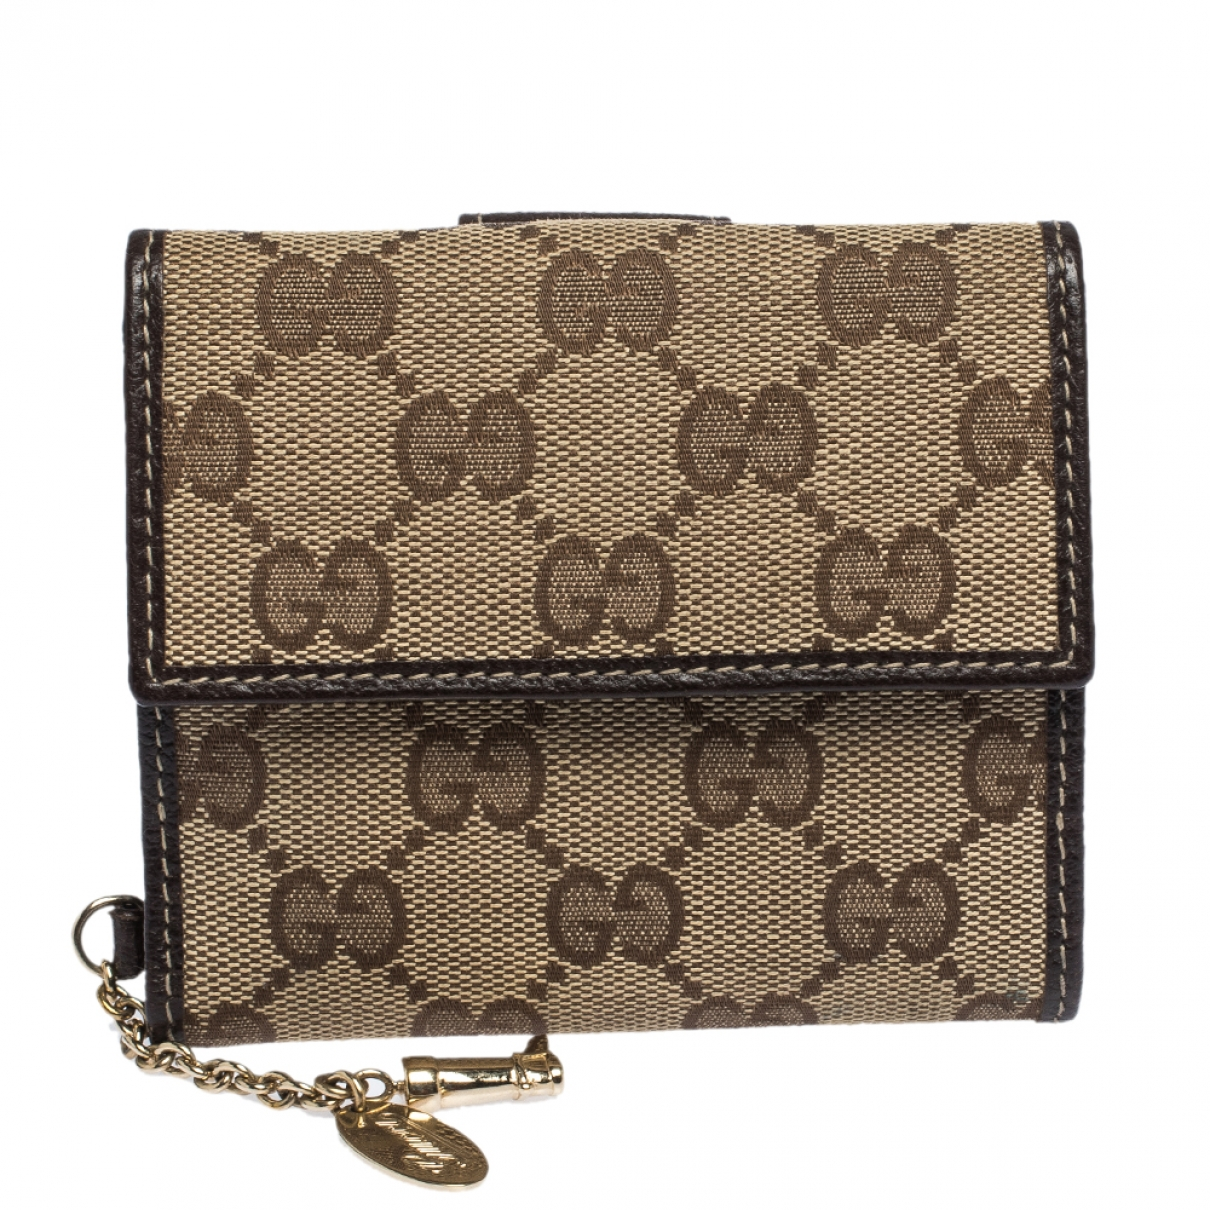 Gucci \N Leather wallet for Women \N